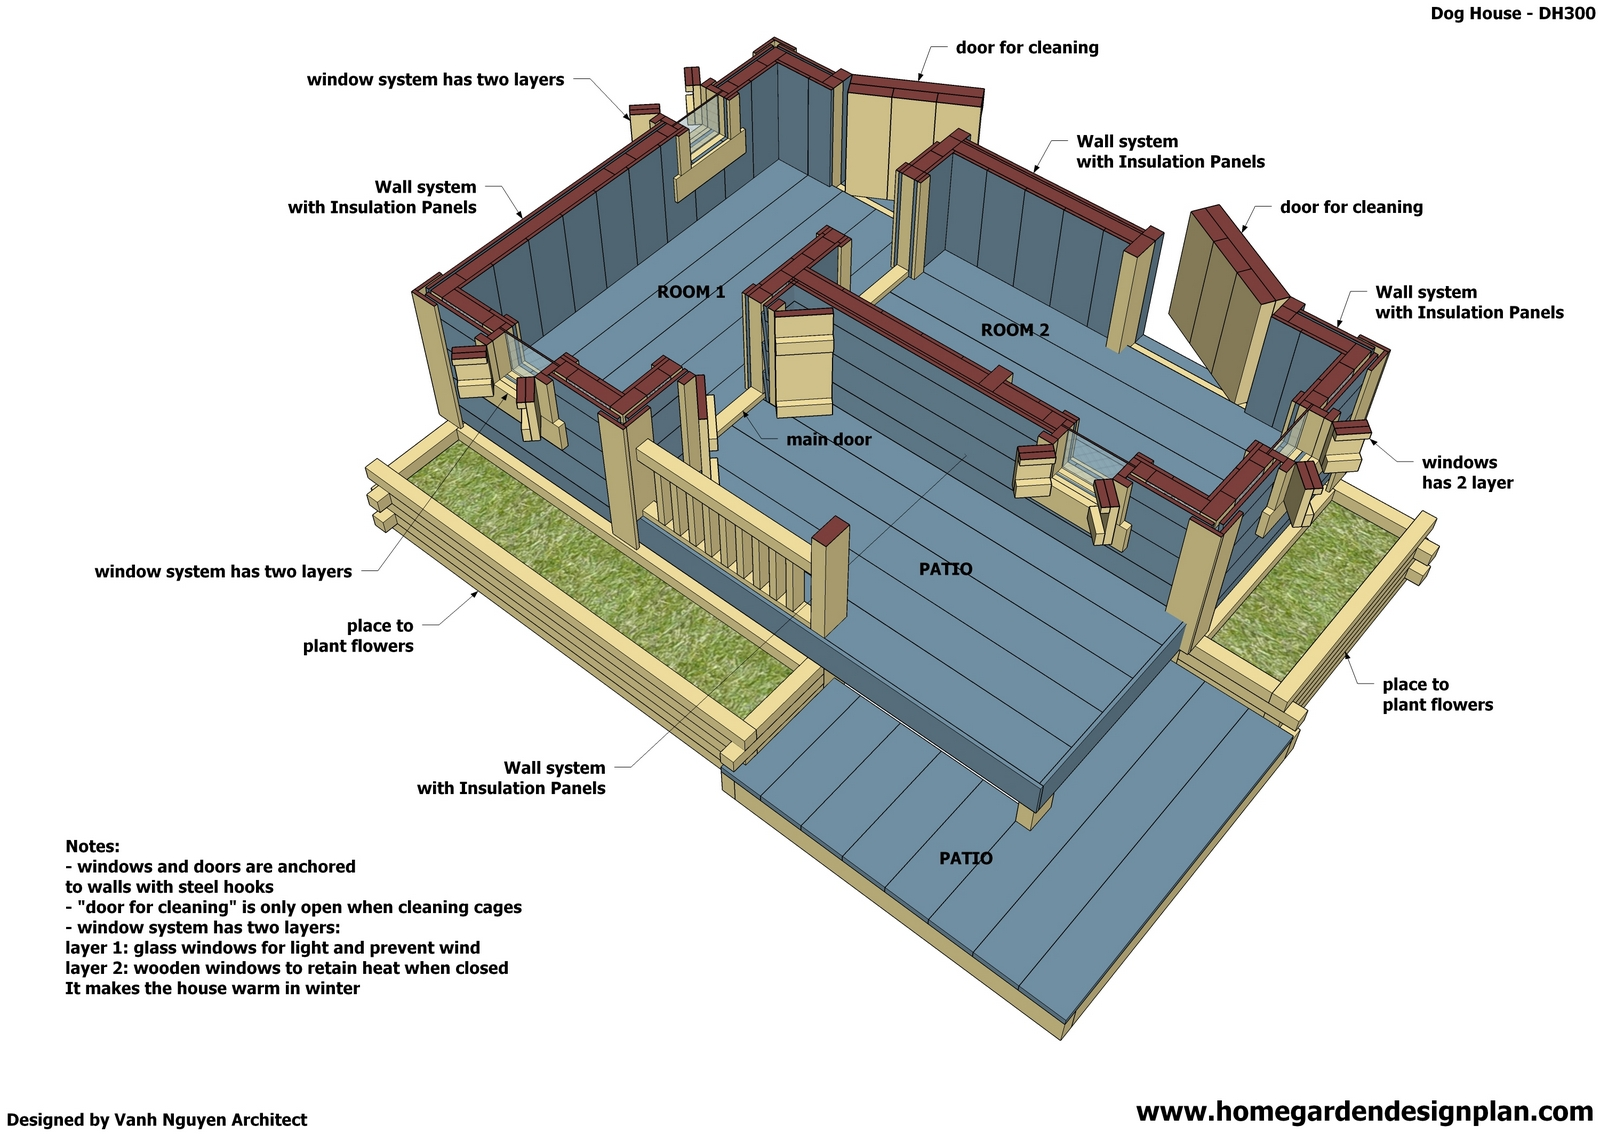 Woodwork 2 dog house plans free pdf plans for Free house blueprints and plans